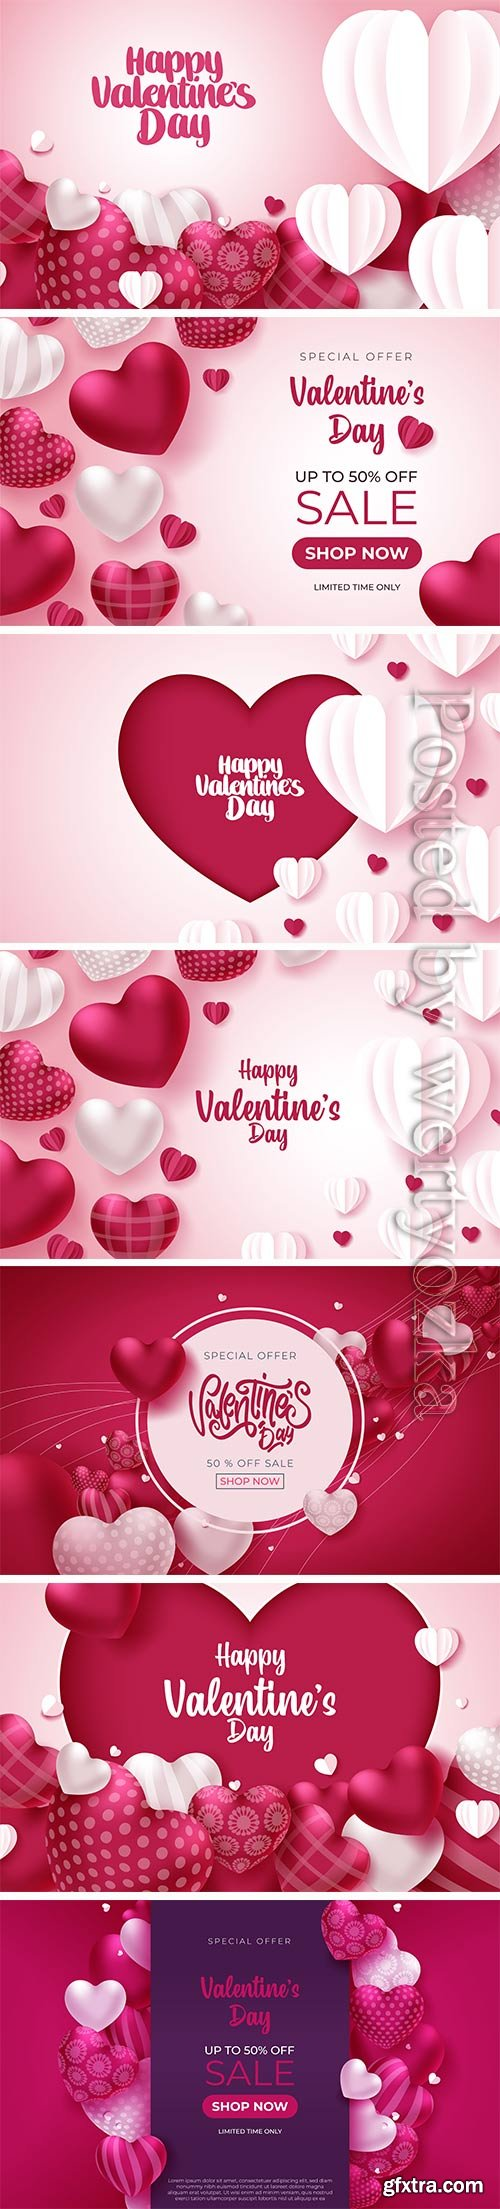 Valentine greeting card with hearts on pink